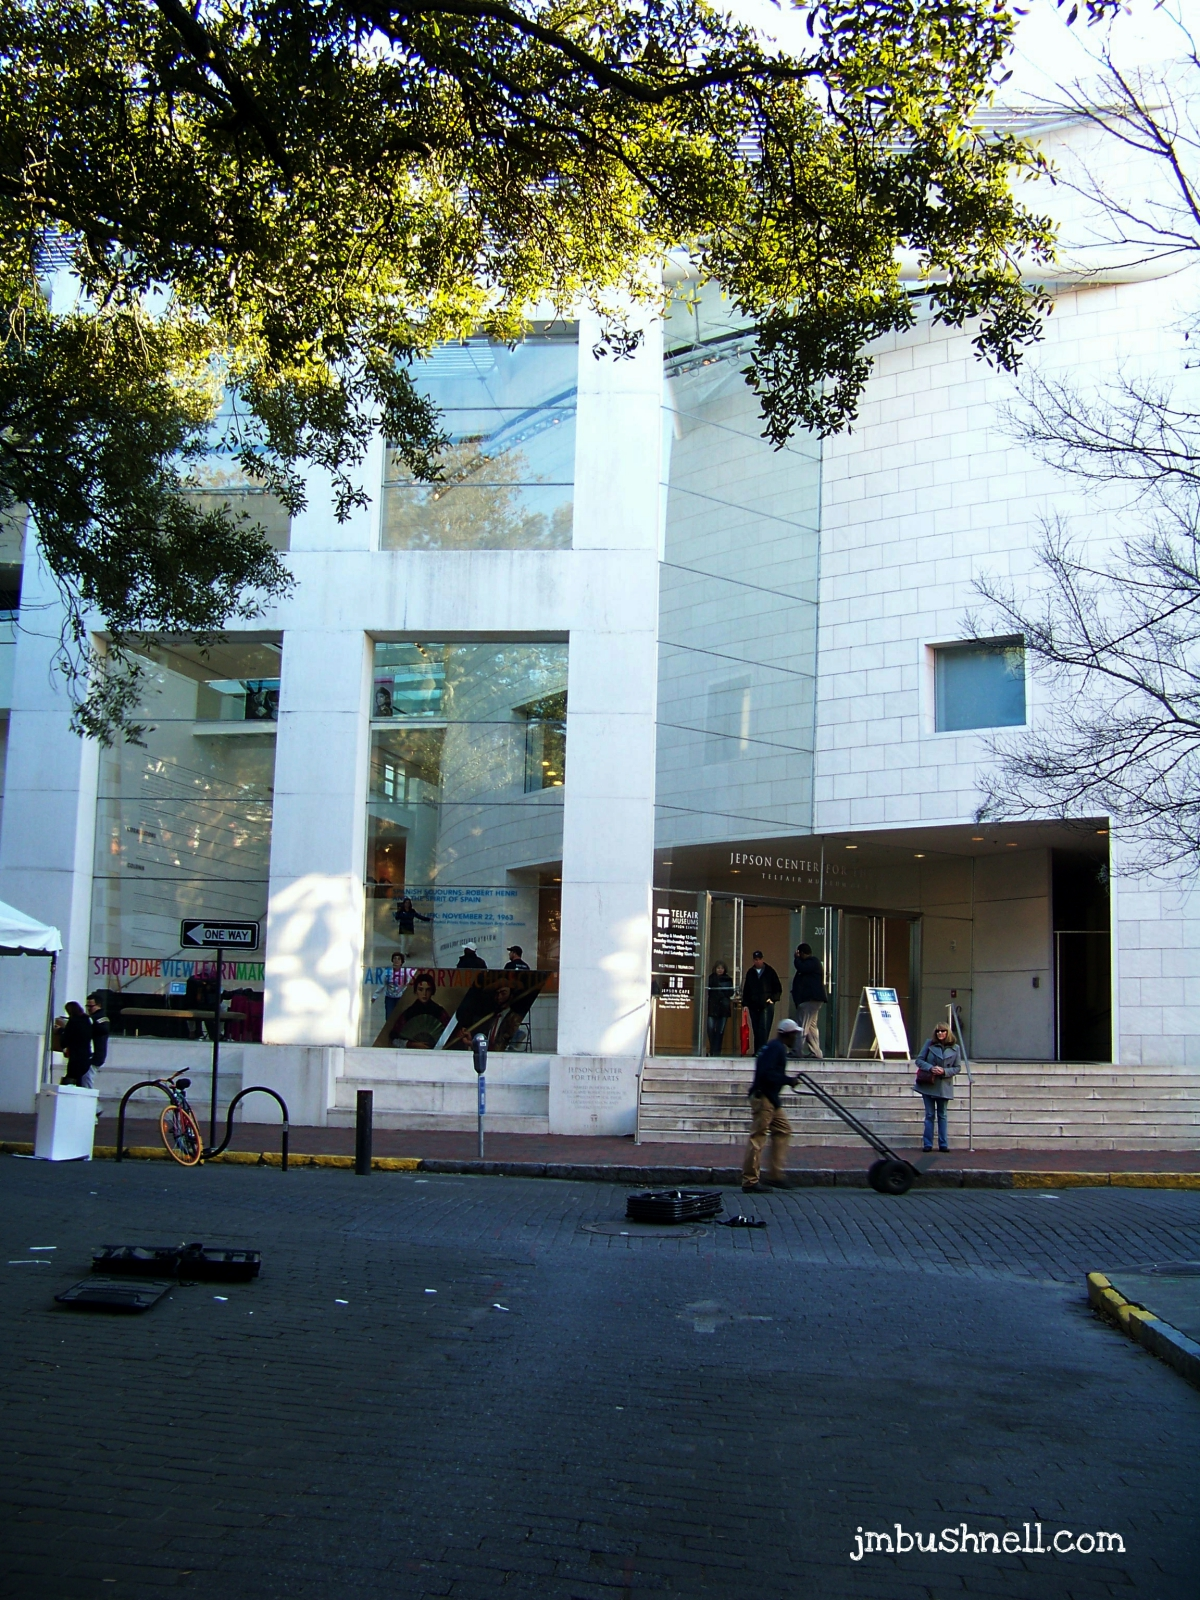 Jepson Center in Savannah, Georgia